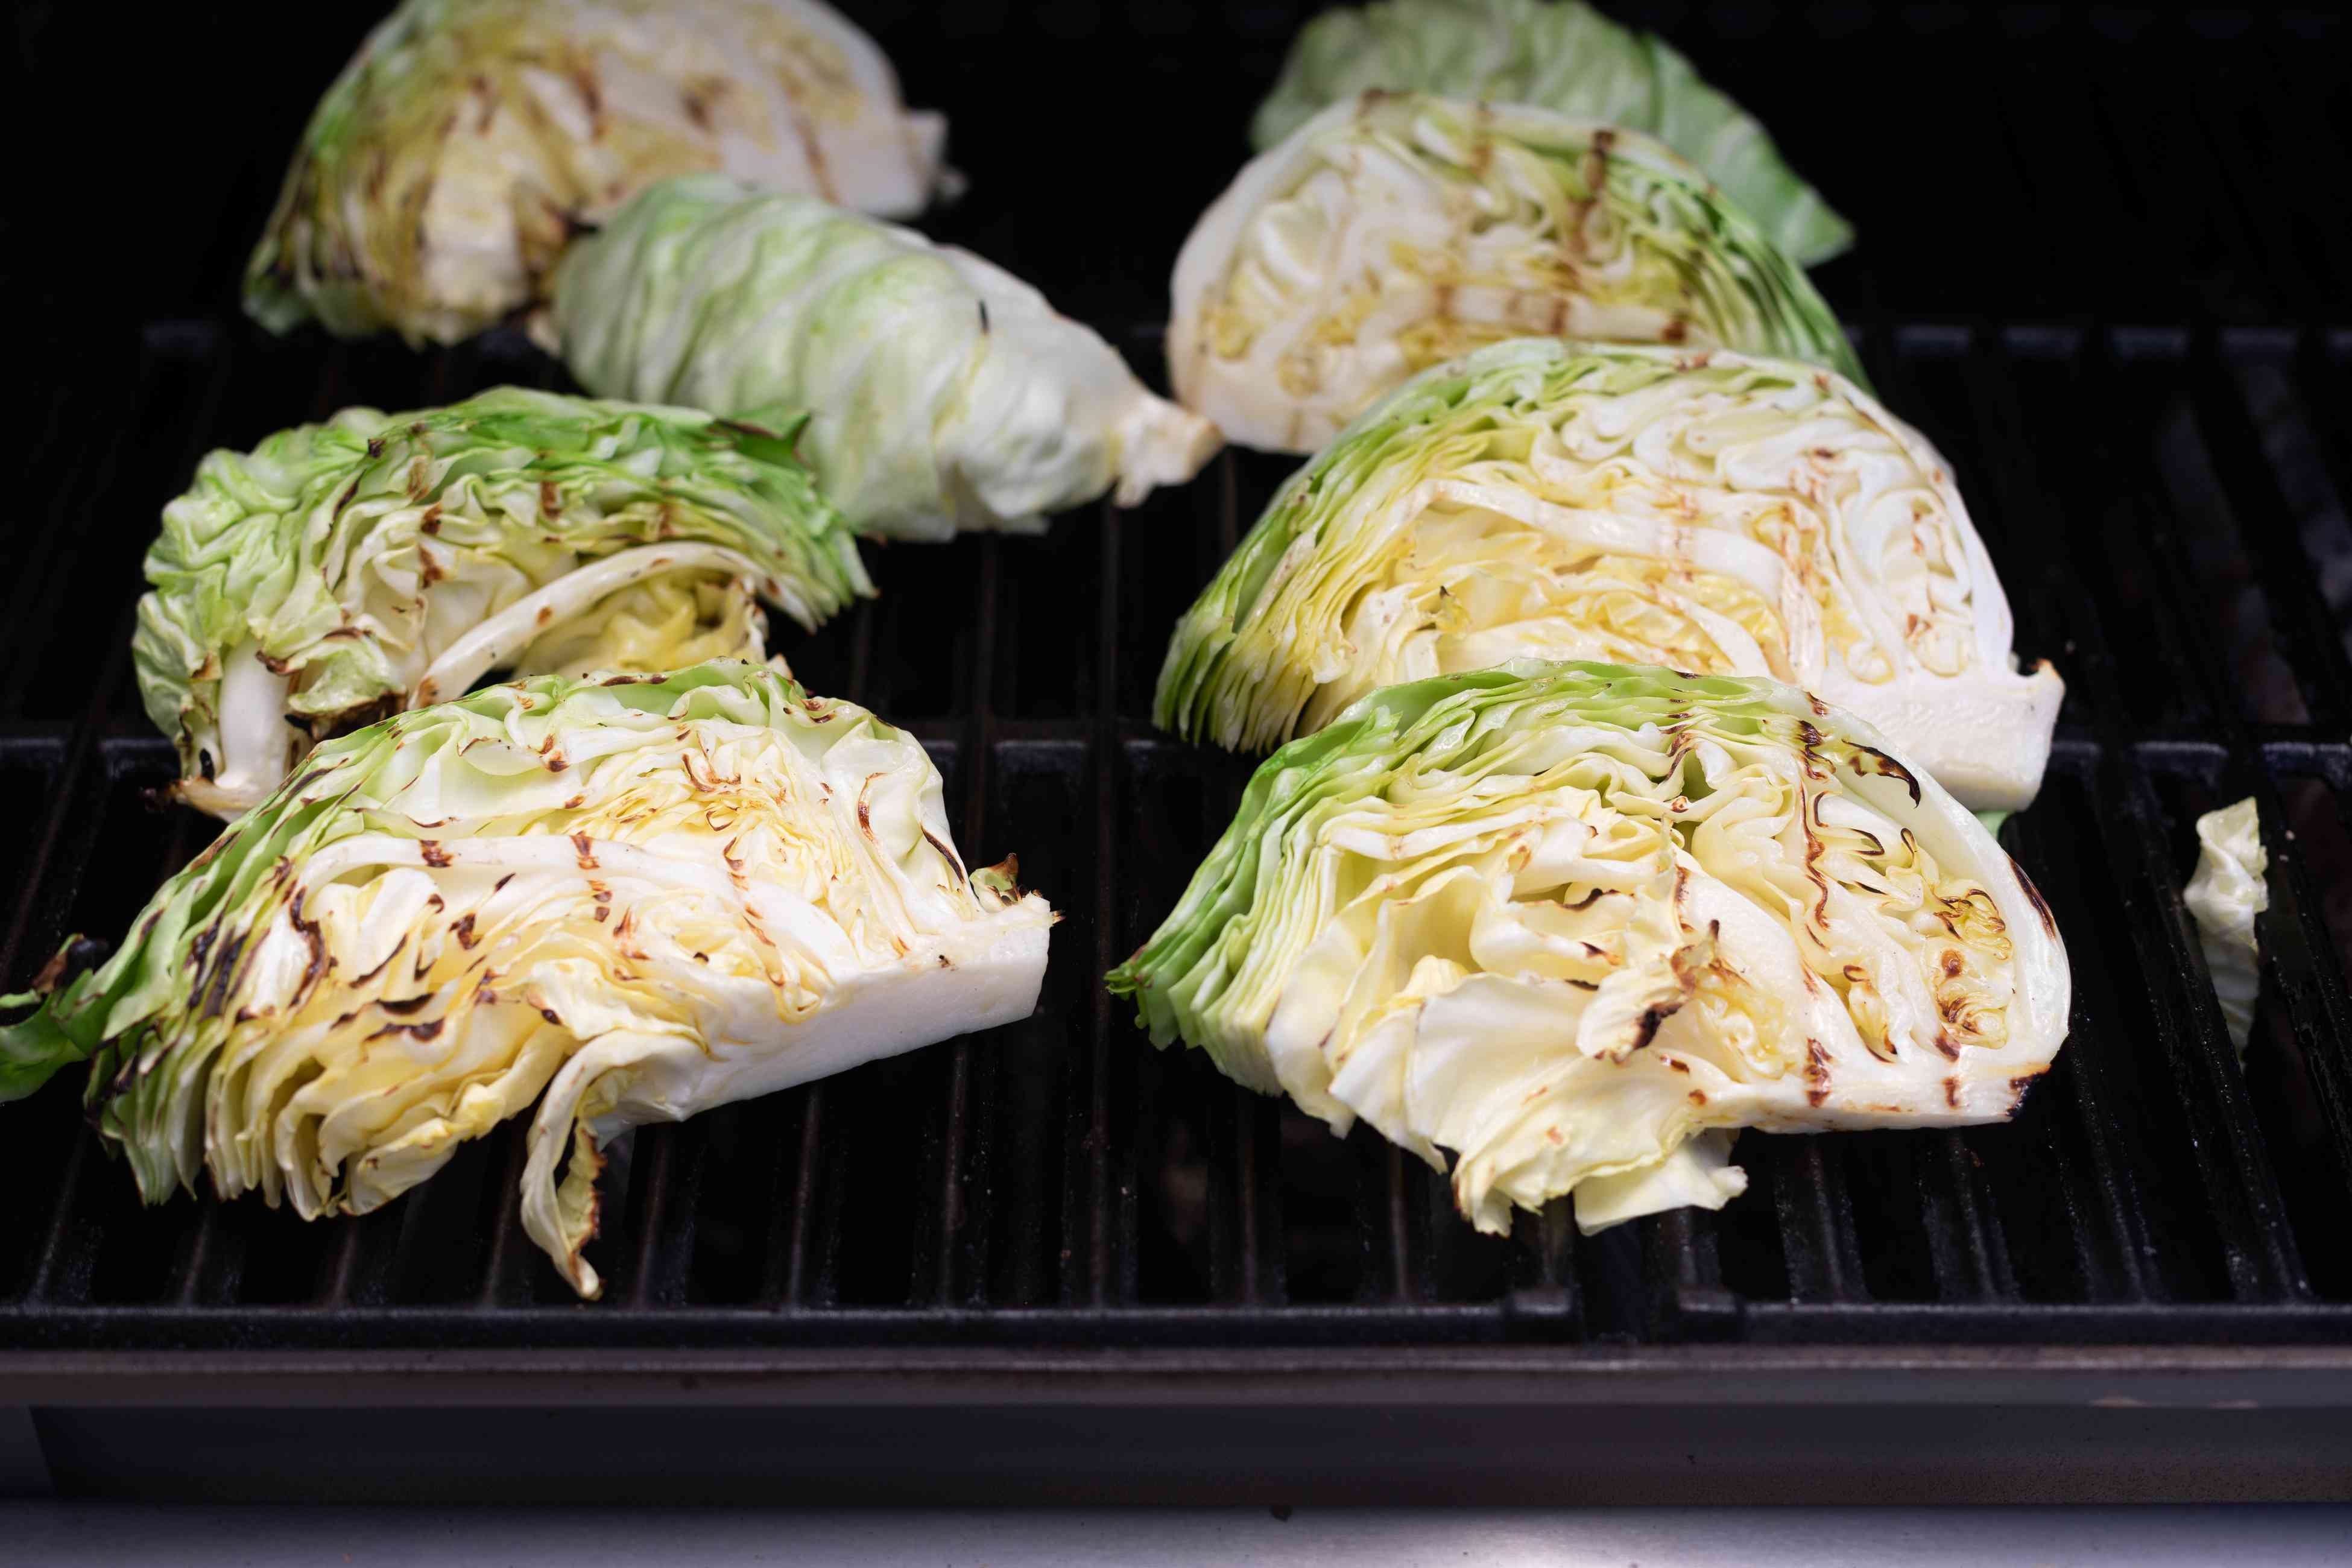 Cabbage wedges set on the grill for Grilled cabbage from Hetty McKinnon author of To Asia with Love.